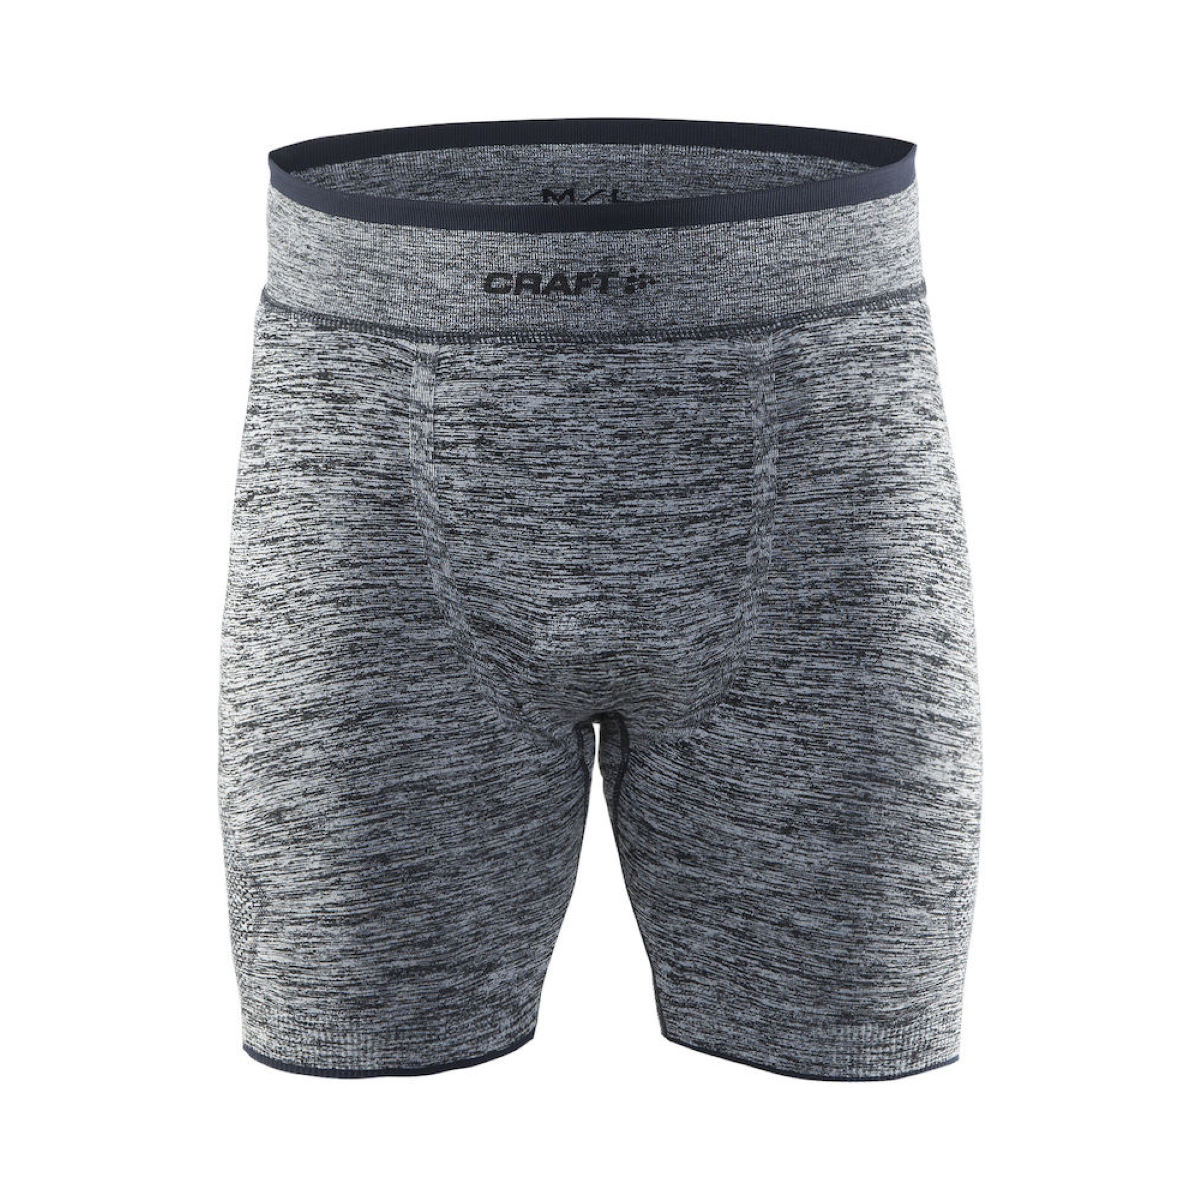 Boxer cycliste Craft Active Comfort - XS/S Noir Vêtements de corps